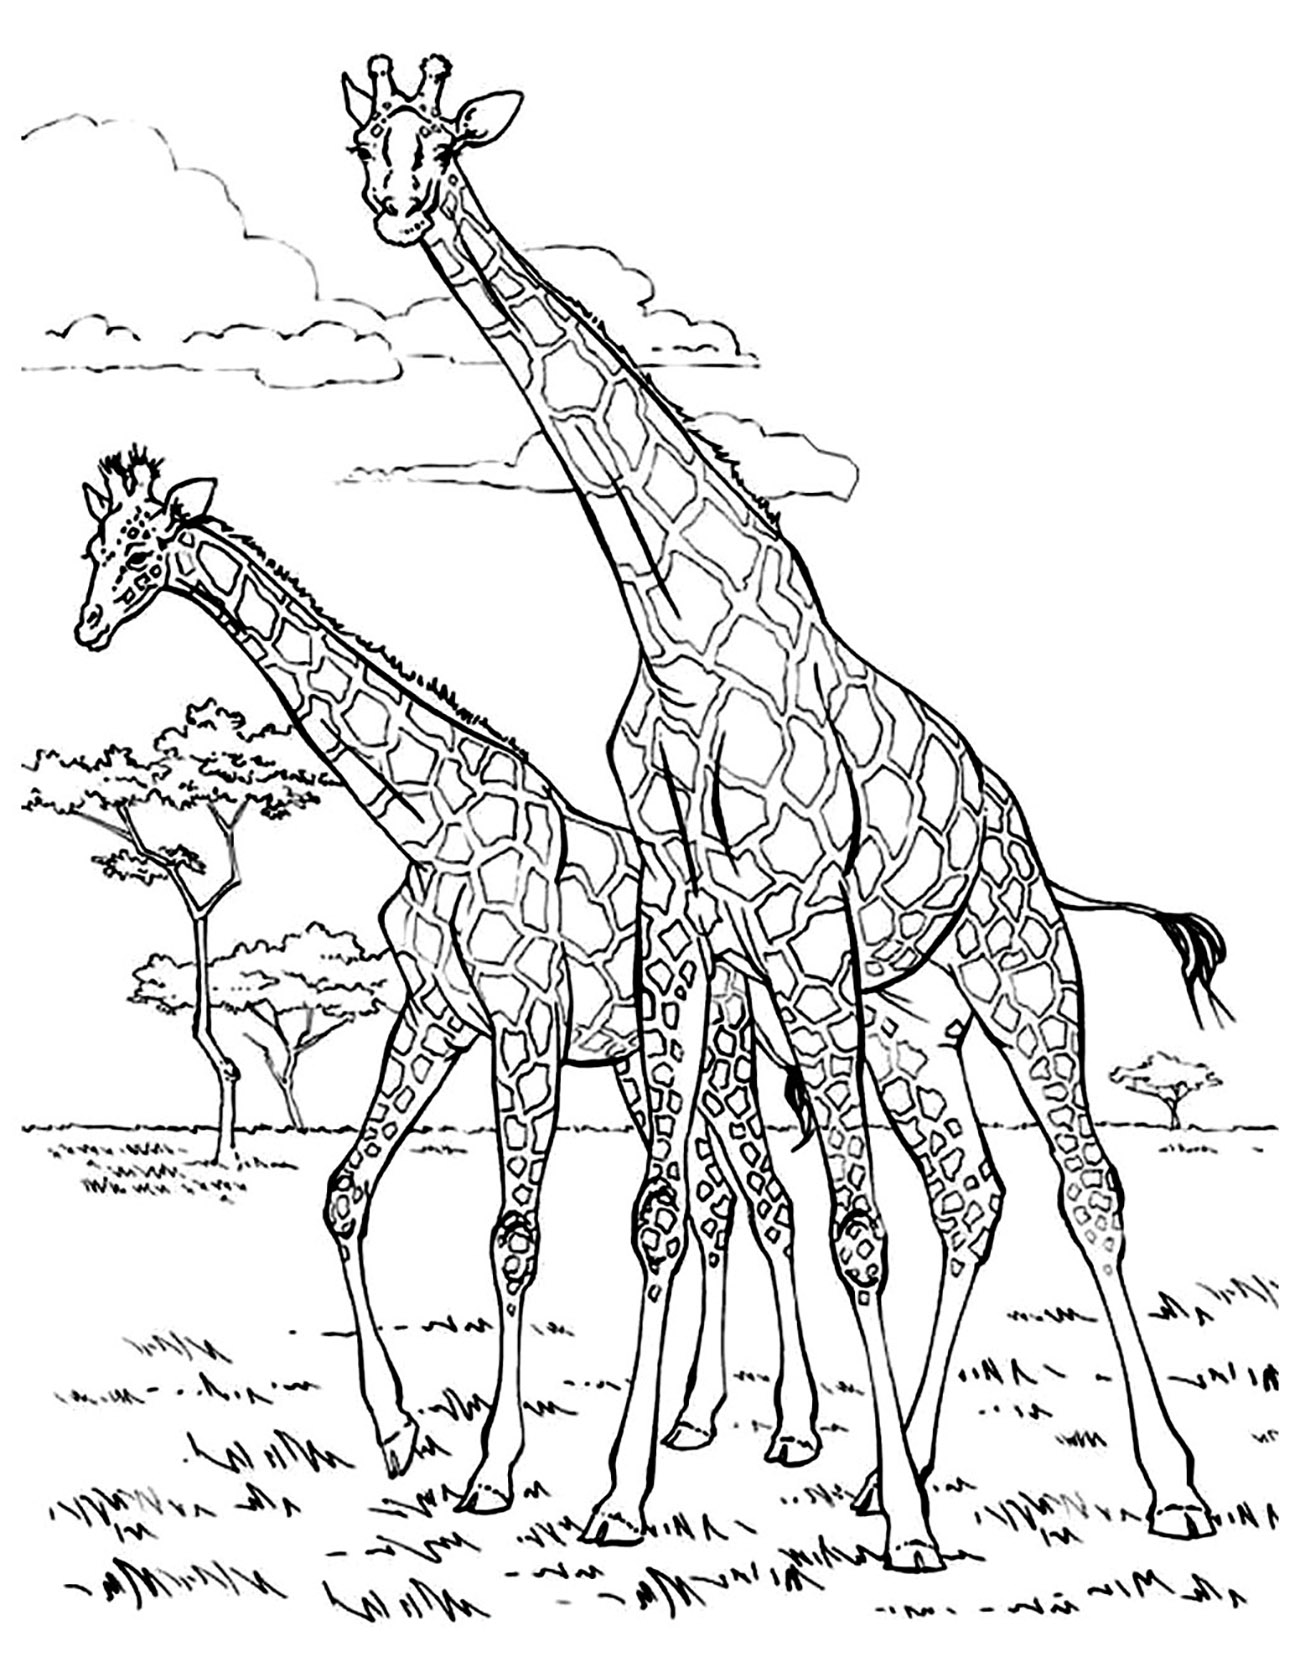 Giraffes coloring page with few details for kids